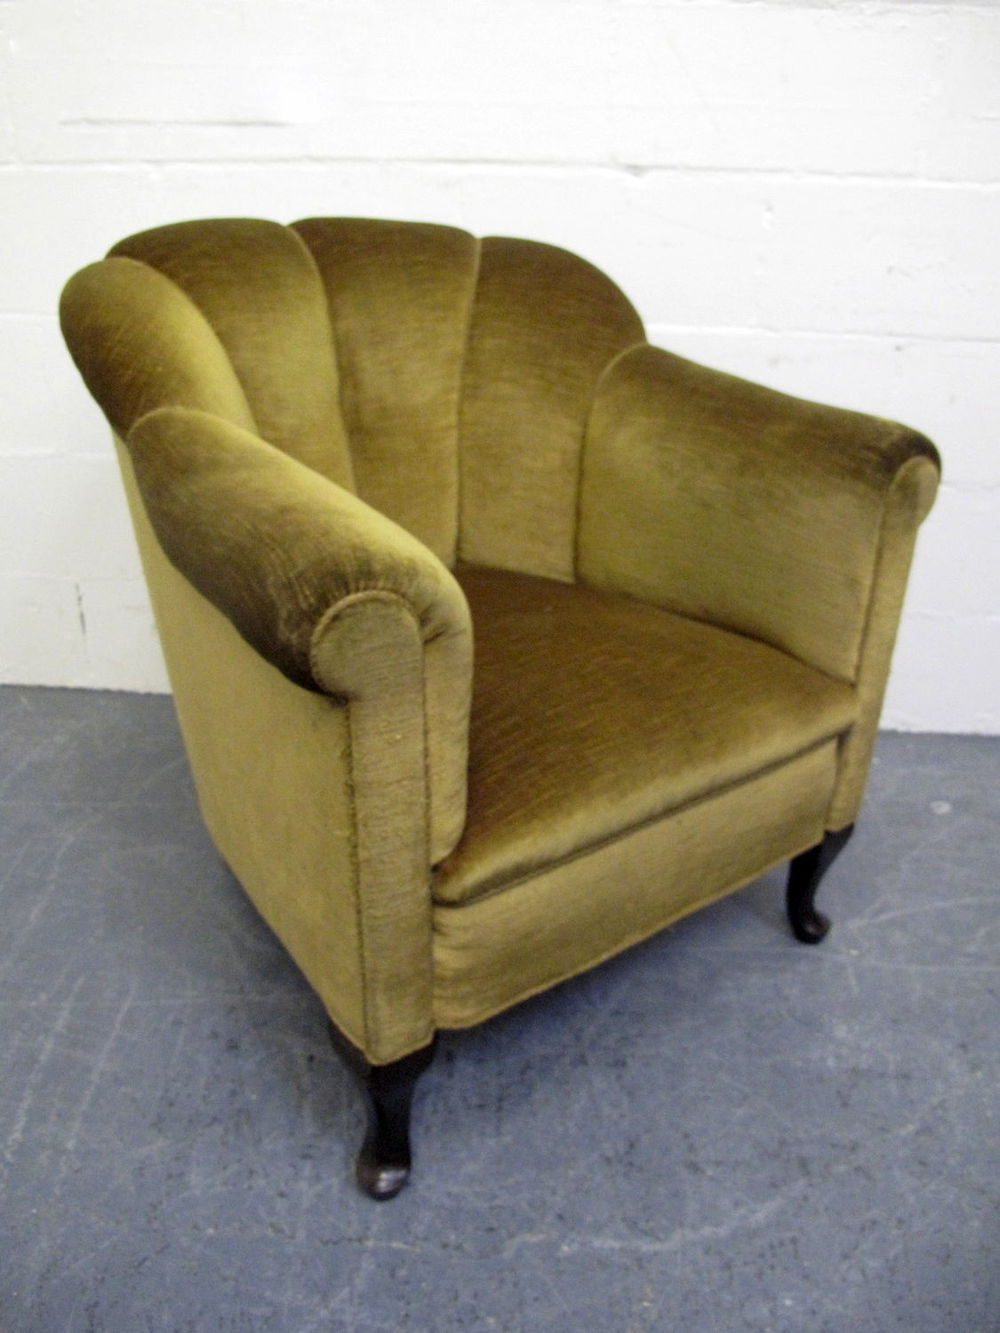 The Hunt For The Perfect Vintage Armchair